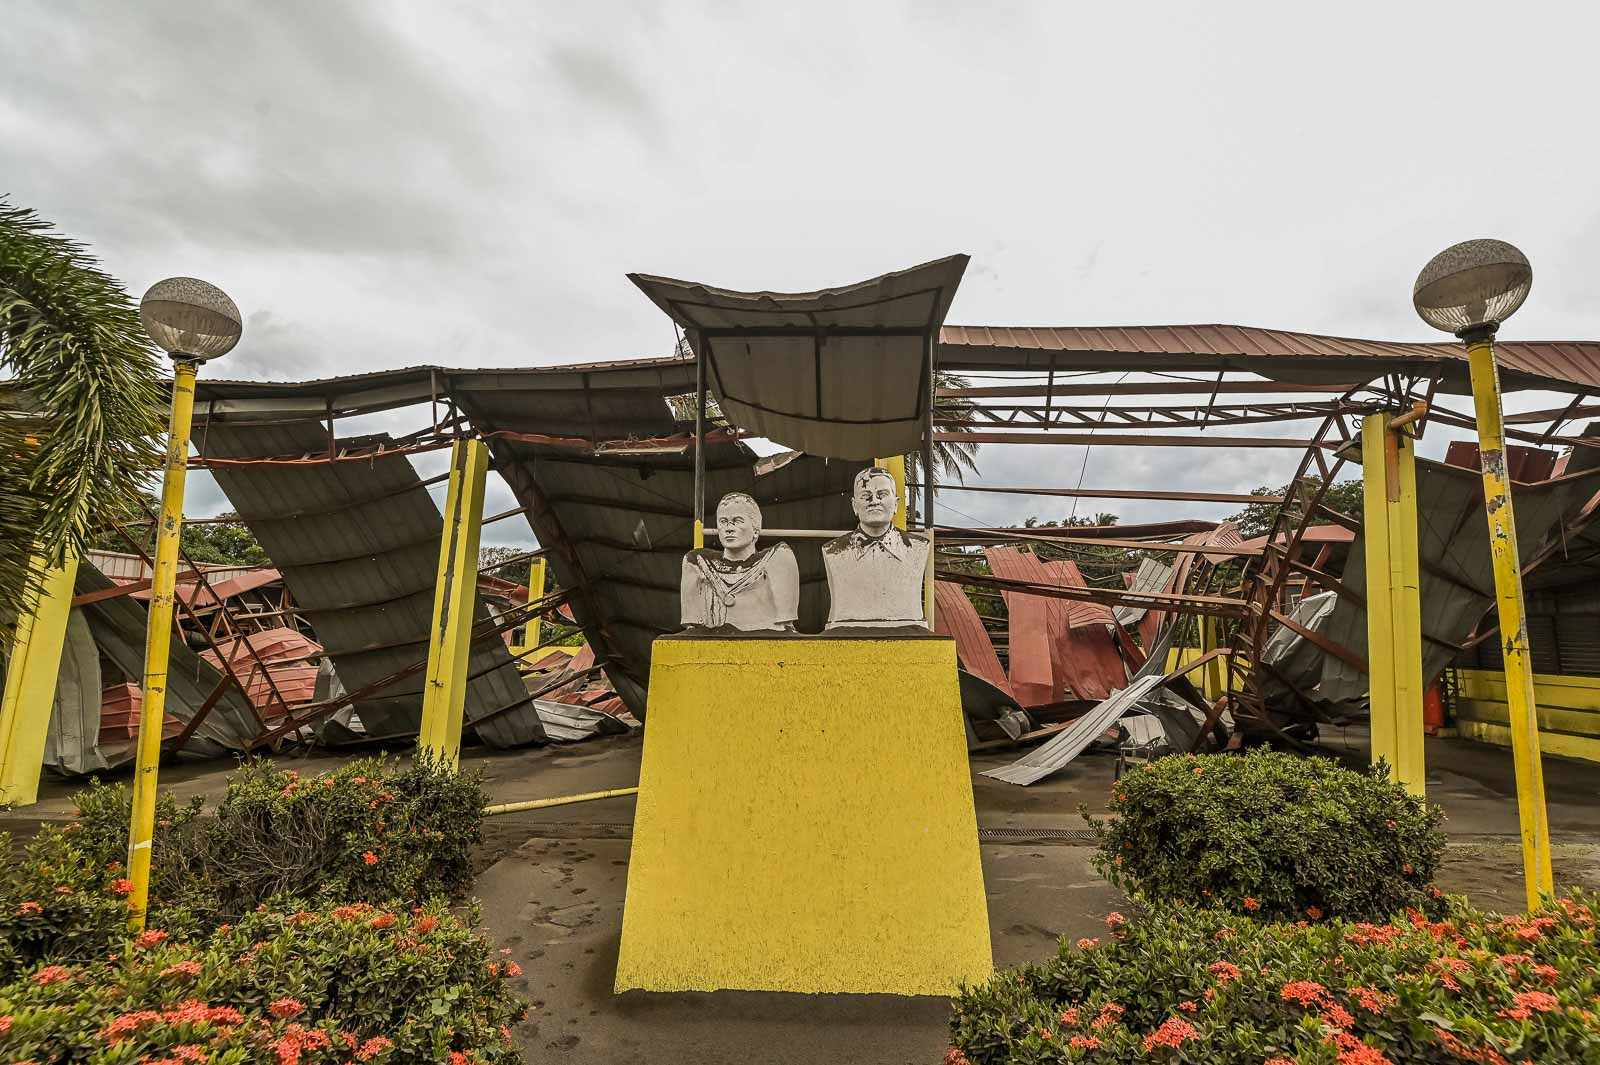 COLLAPSED. The San Teodoro covered court in Barangay San Teodoro, Agoncillo, Batangas on January 15.